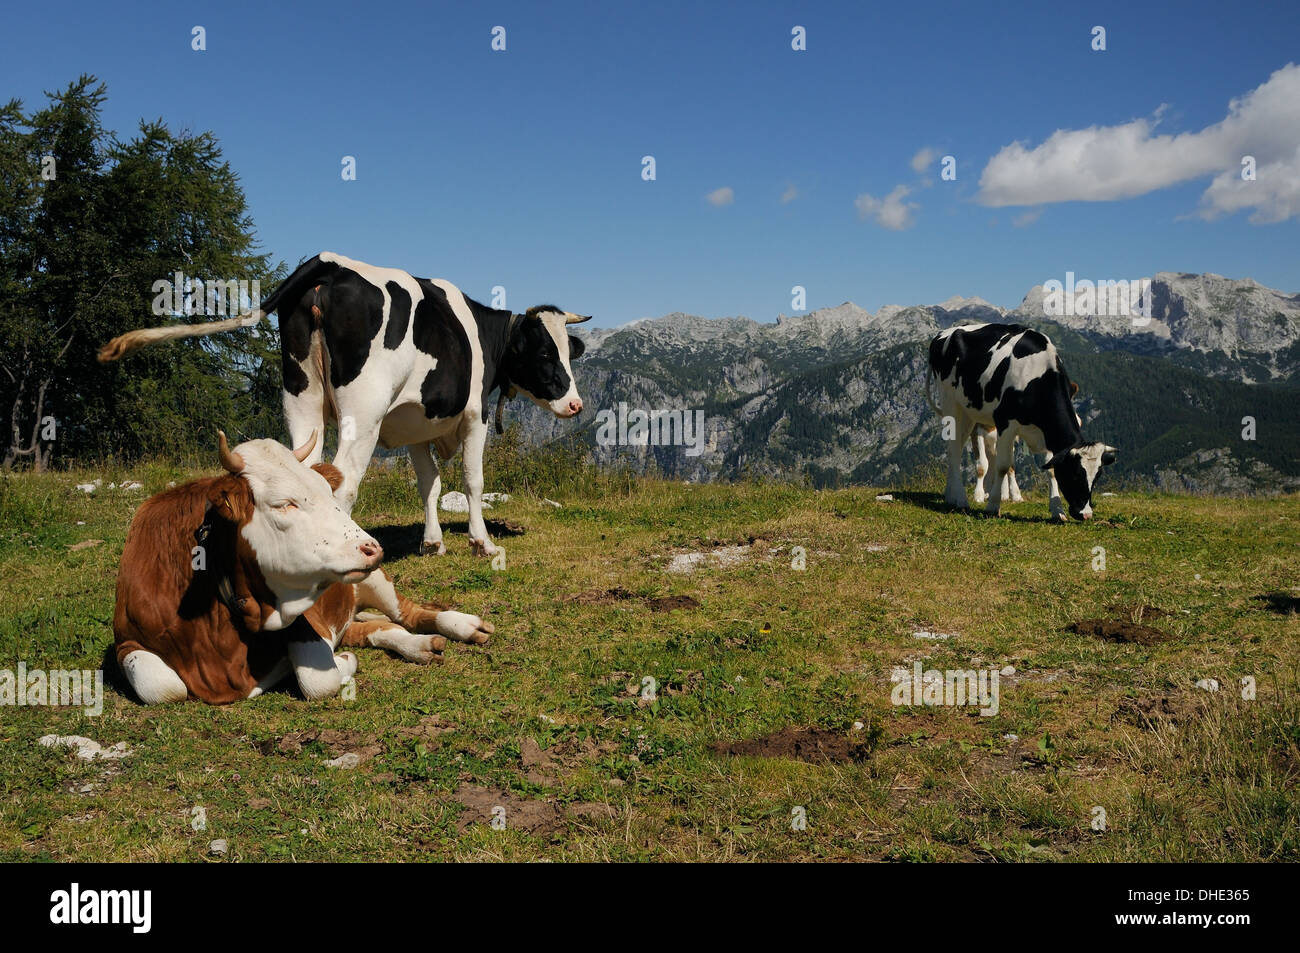 Cows (Bos taurus) lying, standing and grazing on alpine pastureland in the Julian Alps,  Triglav National Park,  Slovenia. - Stock Image